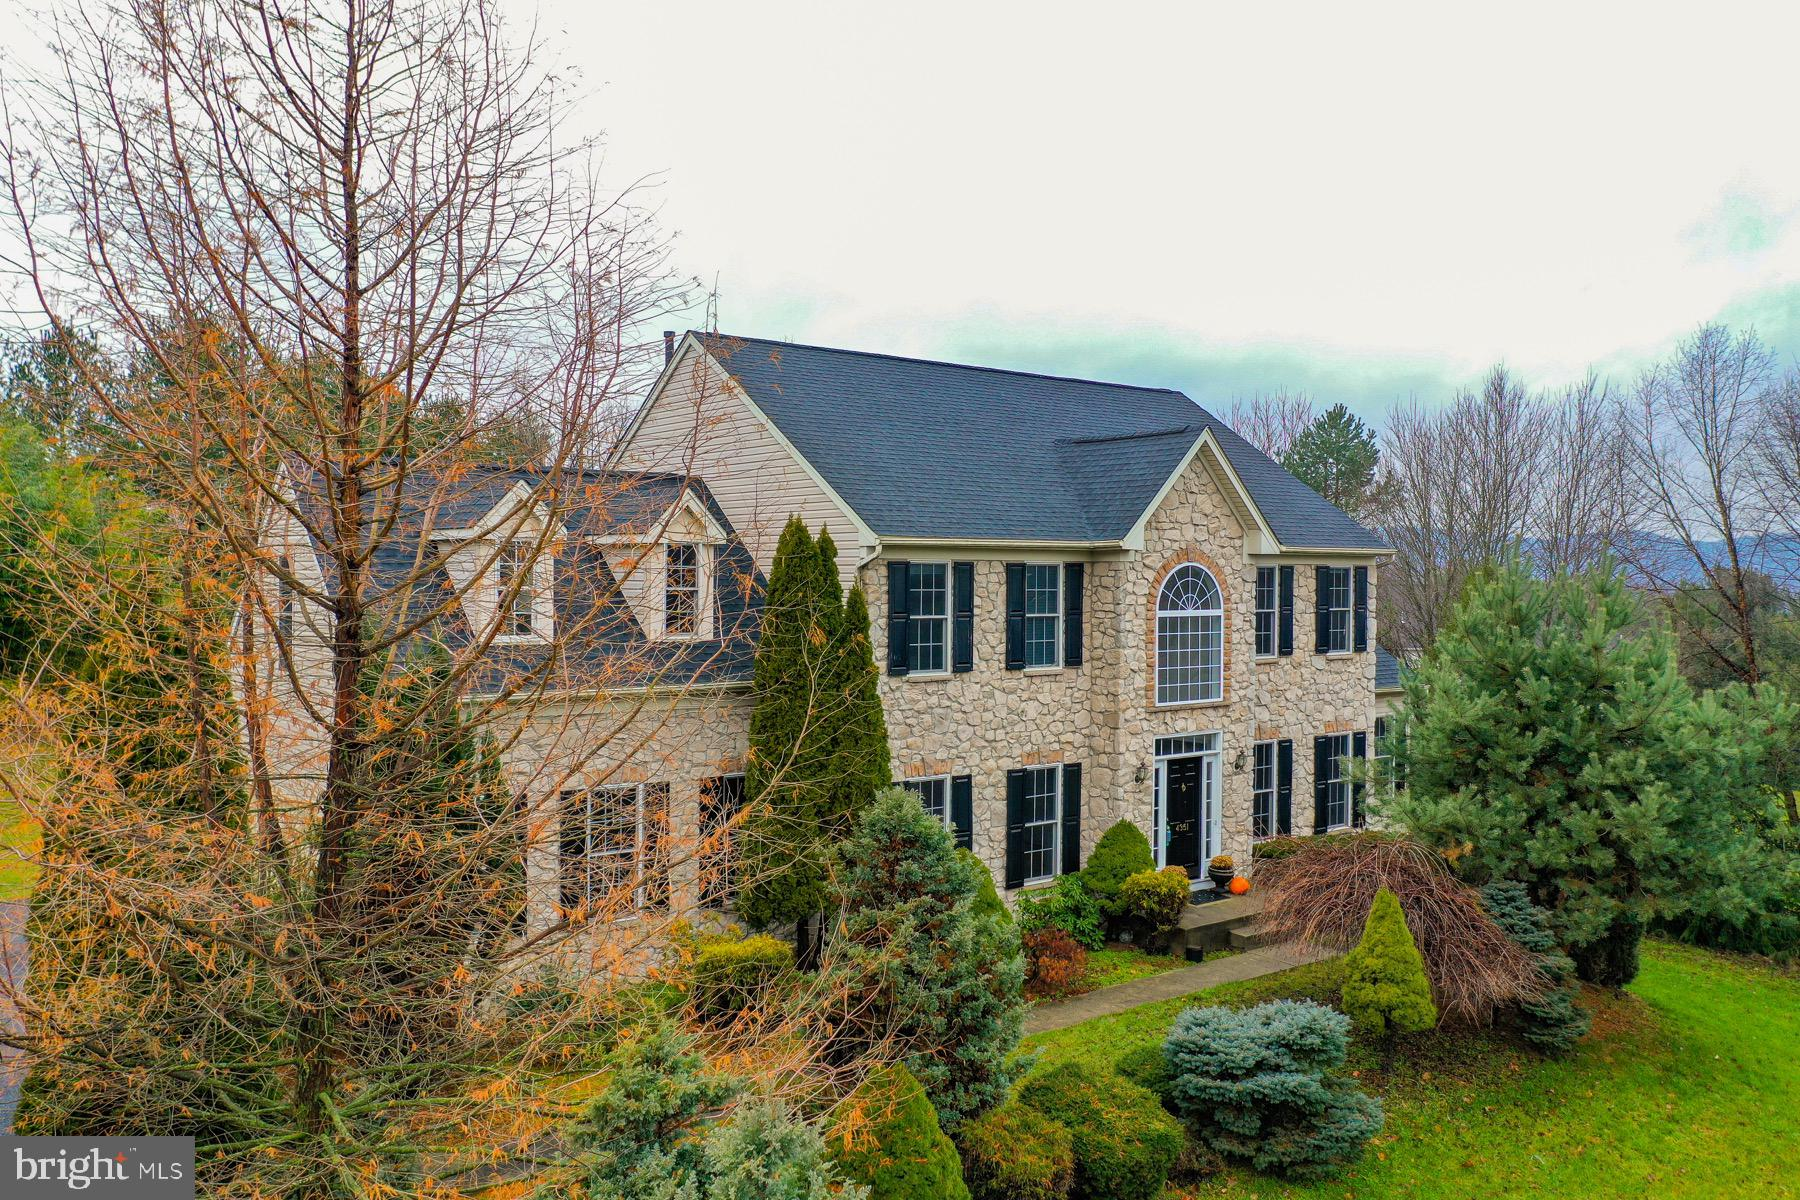 4351 BLUE CHURCH ROAD, CENTER VALLEY, PA 18034